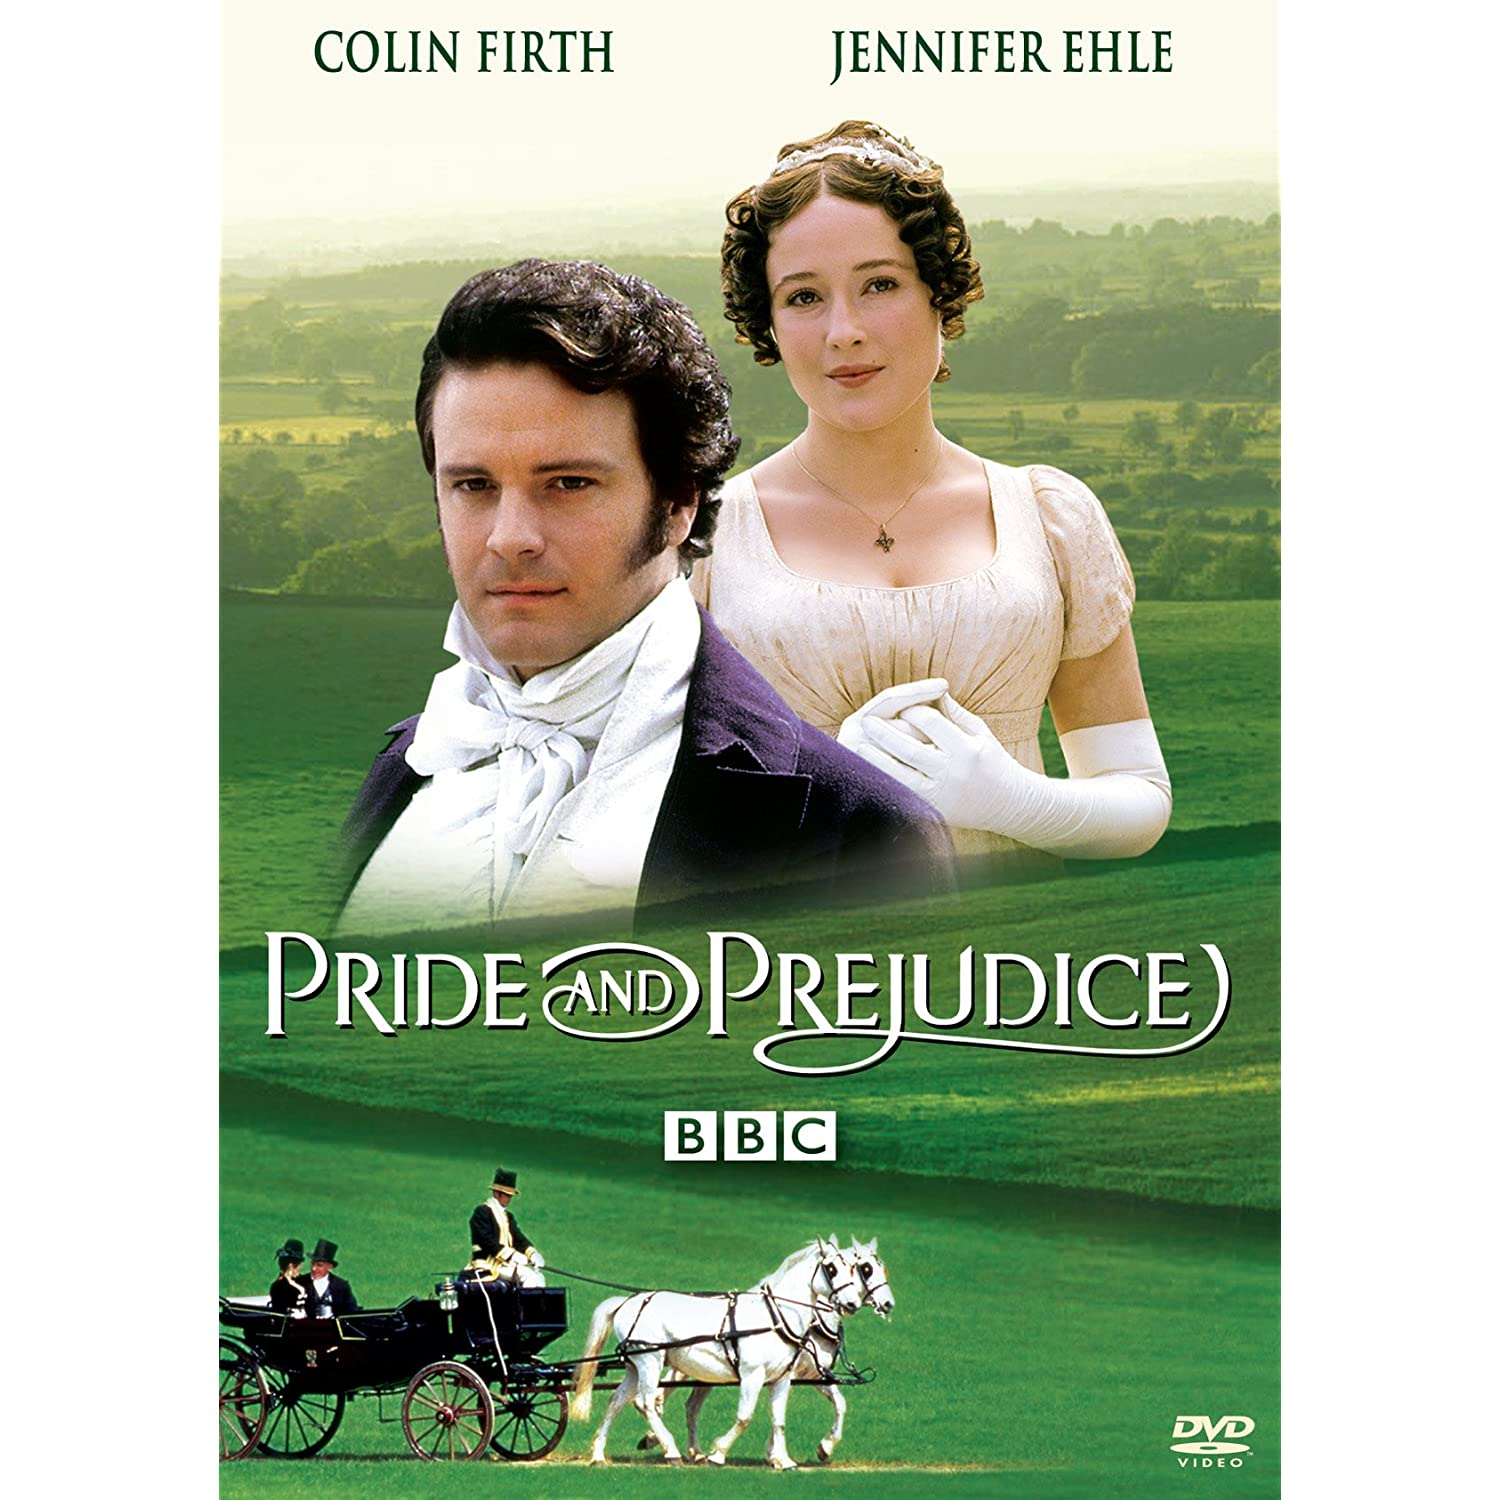 Please help pride and prejudice question?